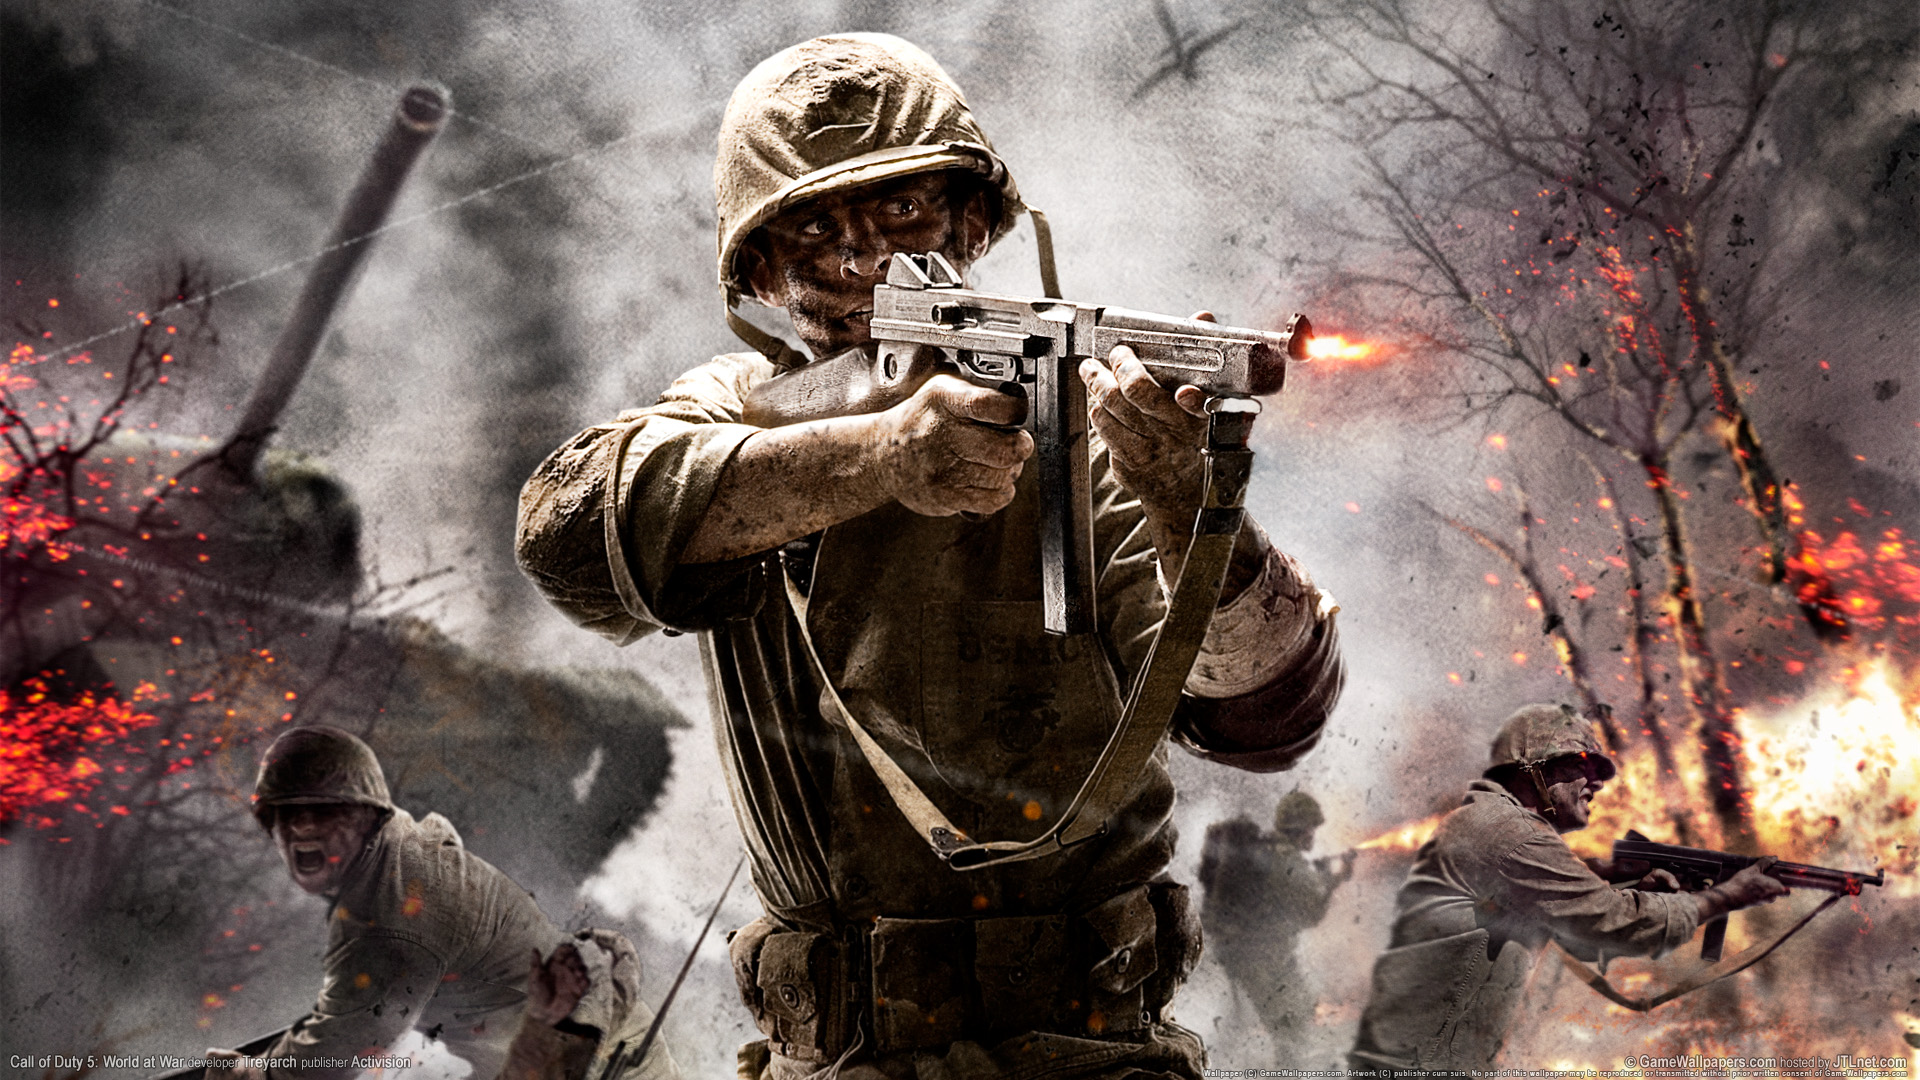 Lanzan un Pack de DLC para Call of Duty: World at War